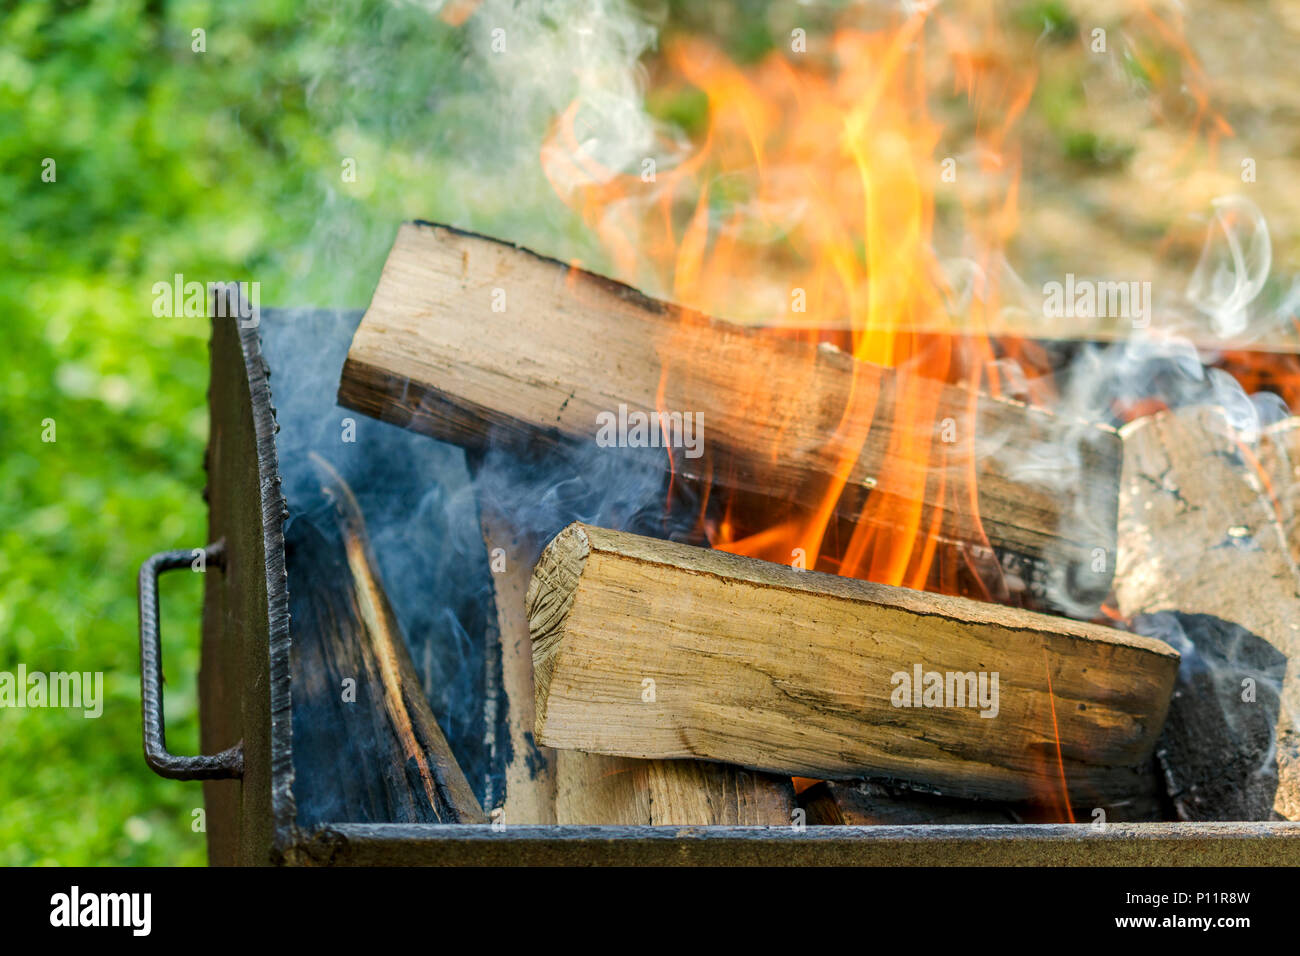 Burning Stained Wood Outdoors